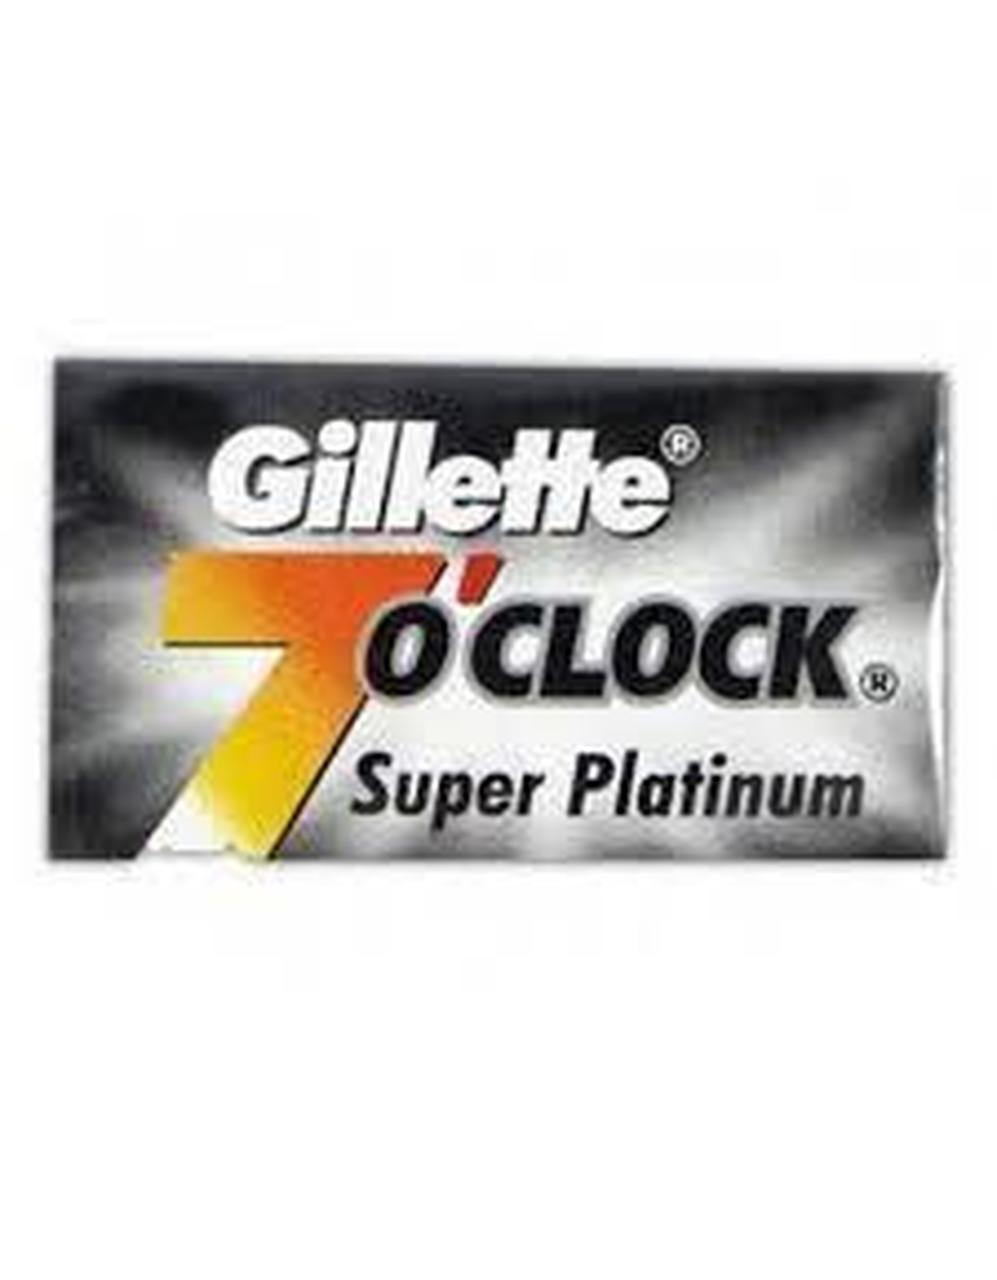 Gillette 7 O'clock BLACK Double Edge Blade 5 Ct.